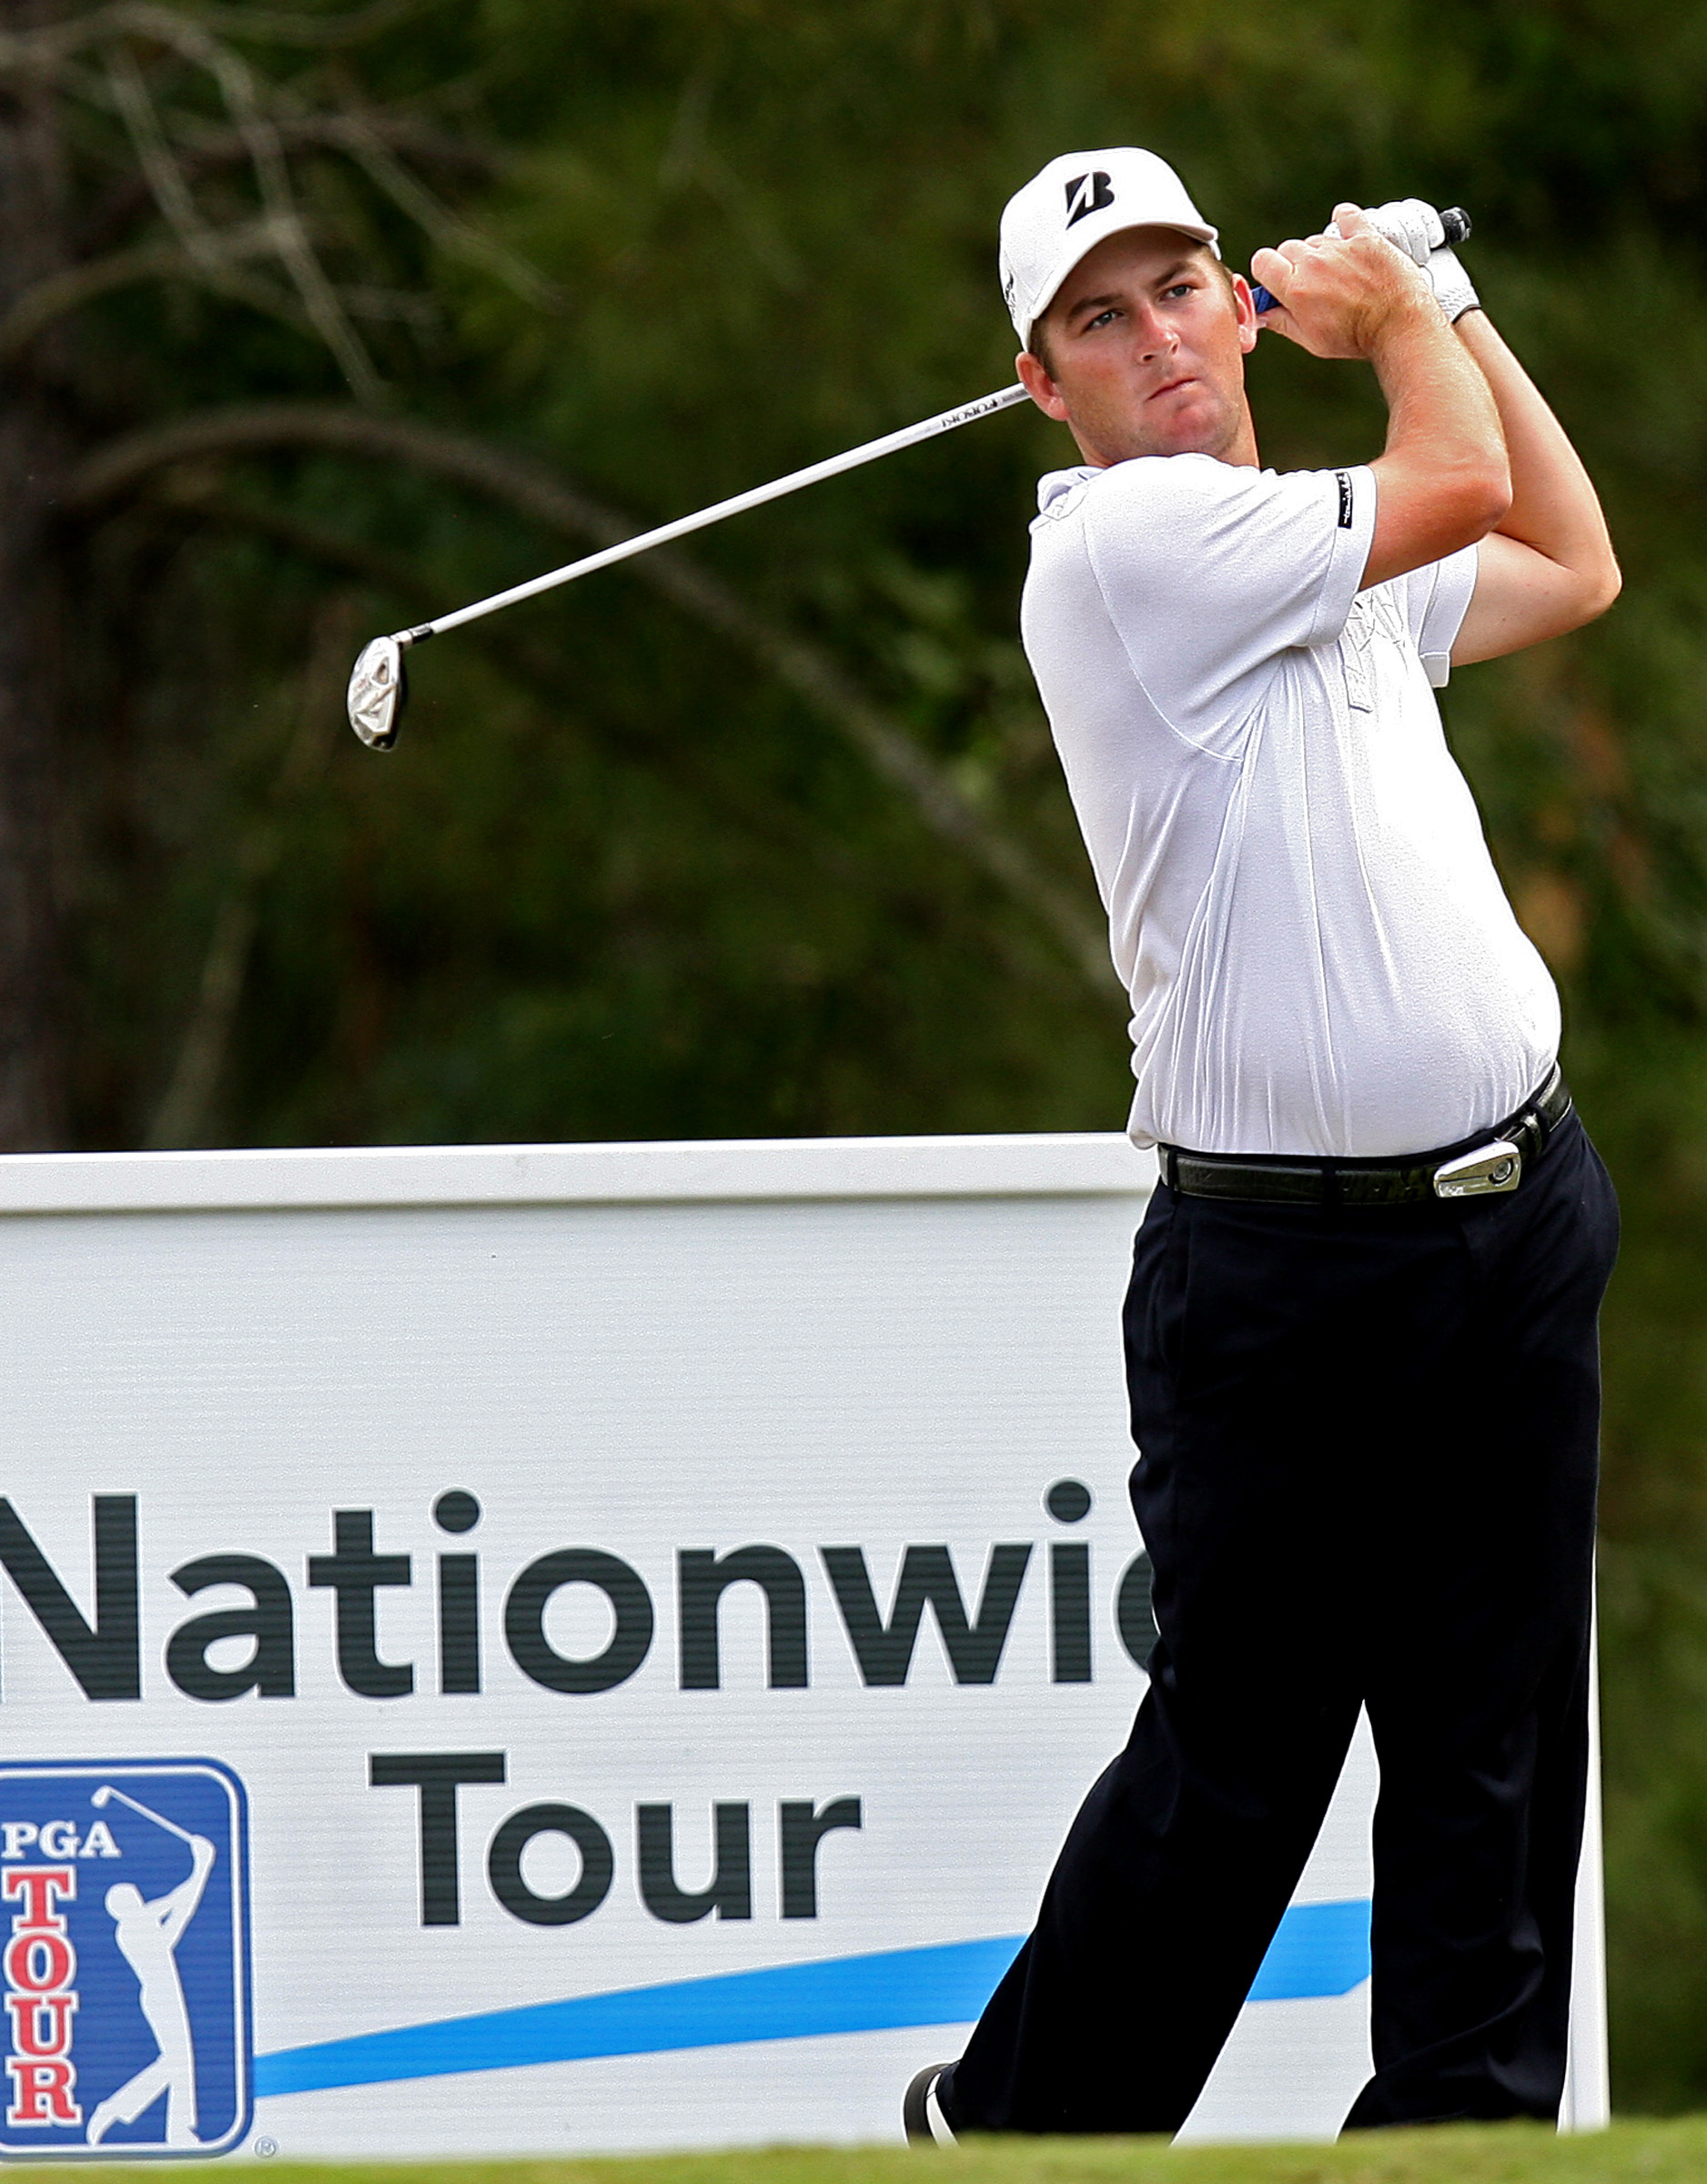 Matt Every at the 2009 Nationwide Tour Championship.